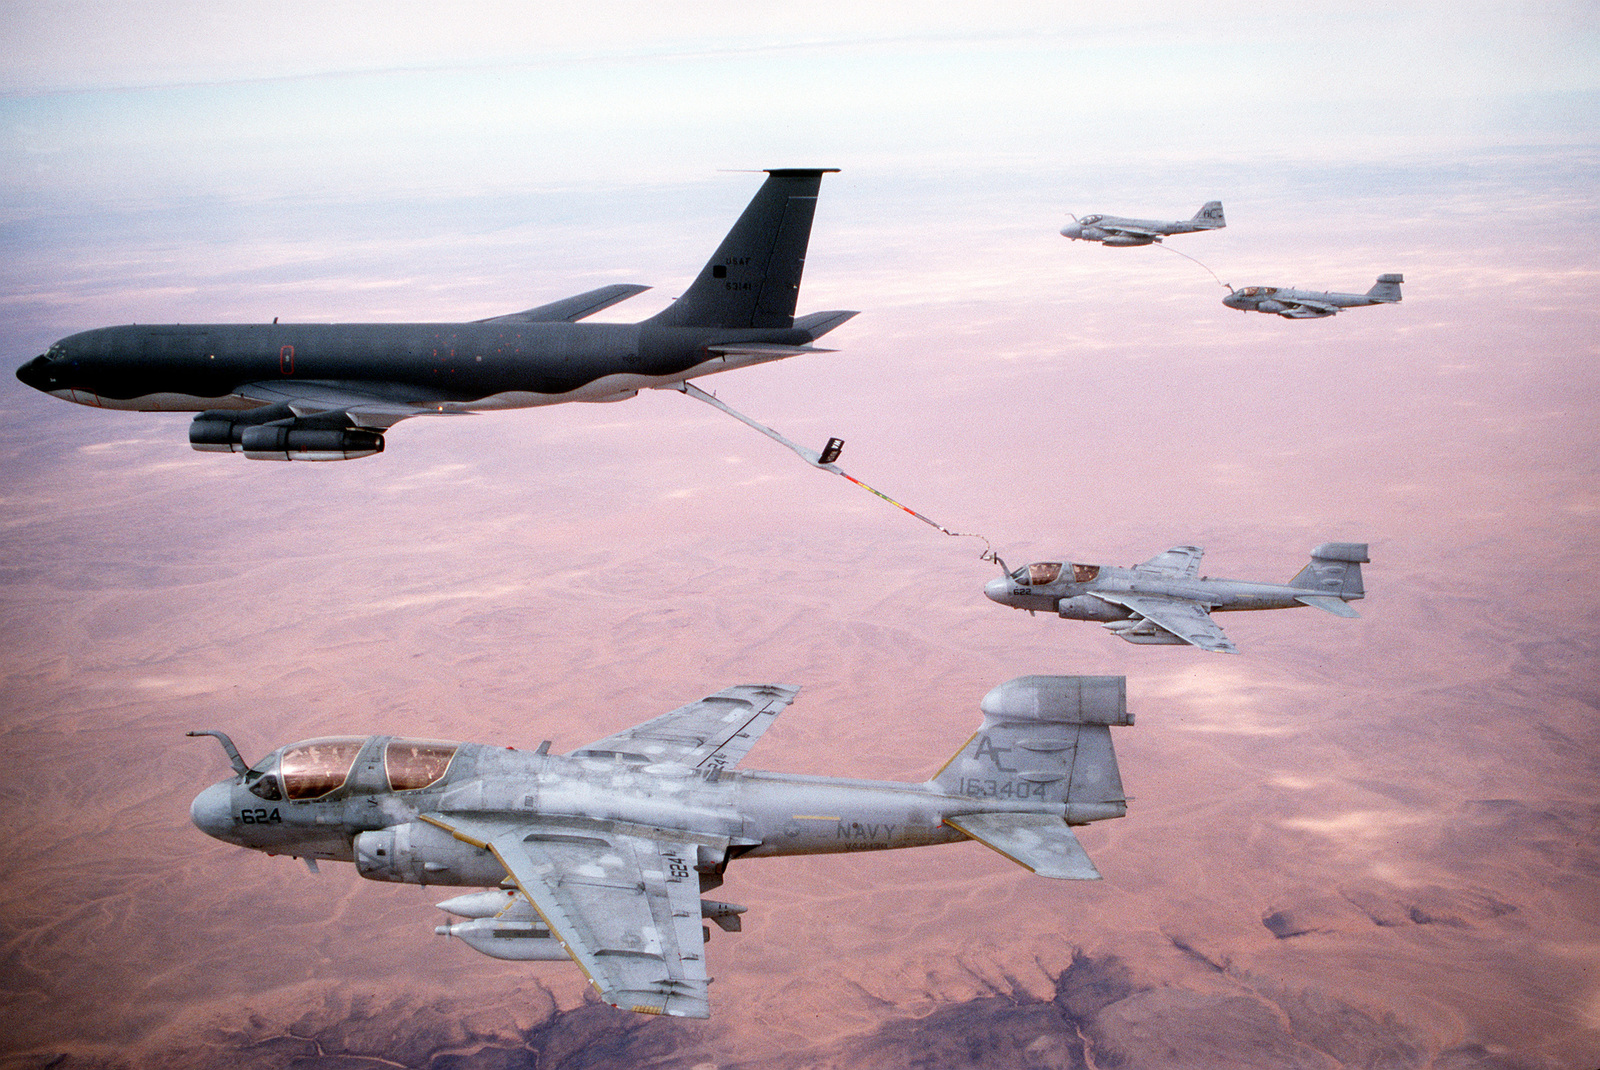 "Two Tactical Electronic Warfare Squadron 130 (VAQ-130) EA-6B Prowler aircraft rendezvous with a KC-135E Stratotanker aircraft to refuel while en route to targets in Iraq during Operation Desert Storm. At upper right, a third Prowler aircraft is refueled by an Attack Squadron 75 (VA-75) A-6E Intruder aircraft carrying a ""buddy store"" external fuel tank. VAQ-130 and VA-75 are based aboard the aircraft carrier USS JOHN F. KENNEDY (CV-67)"